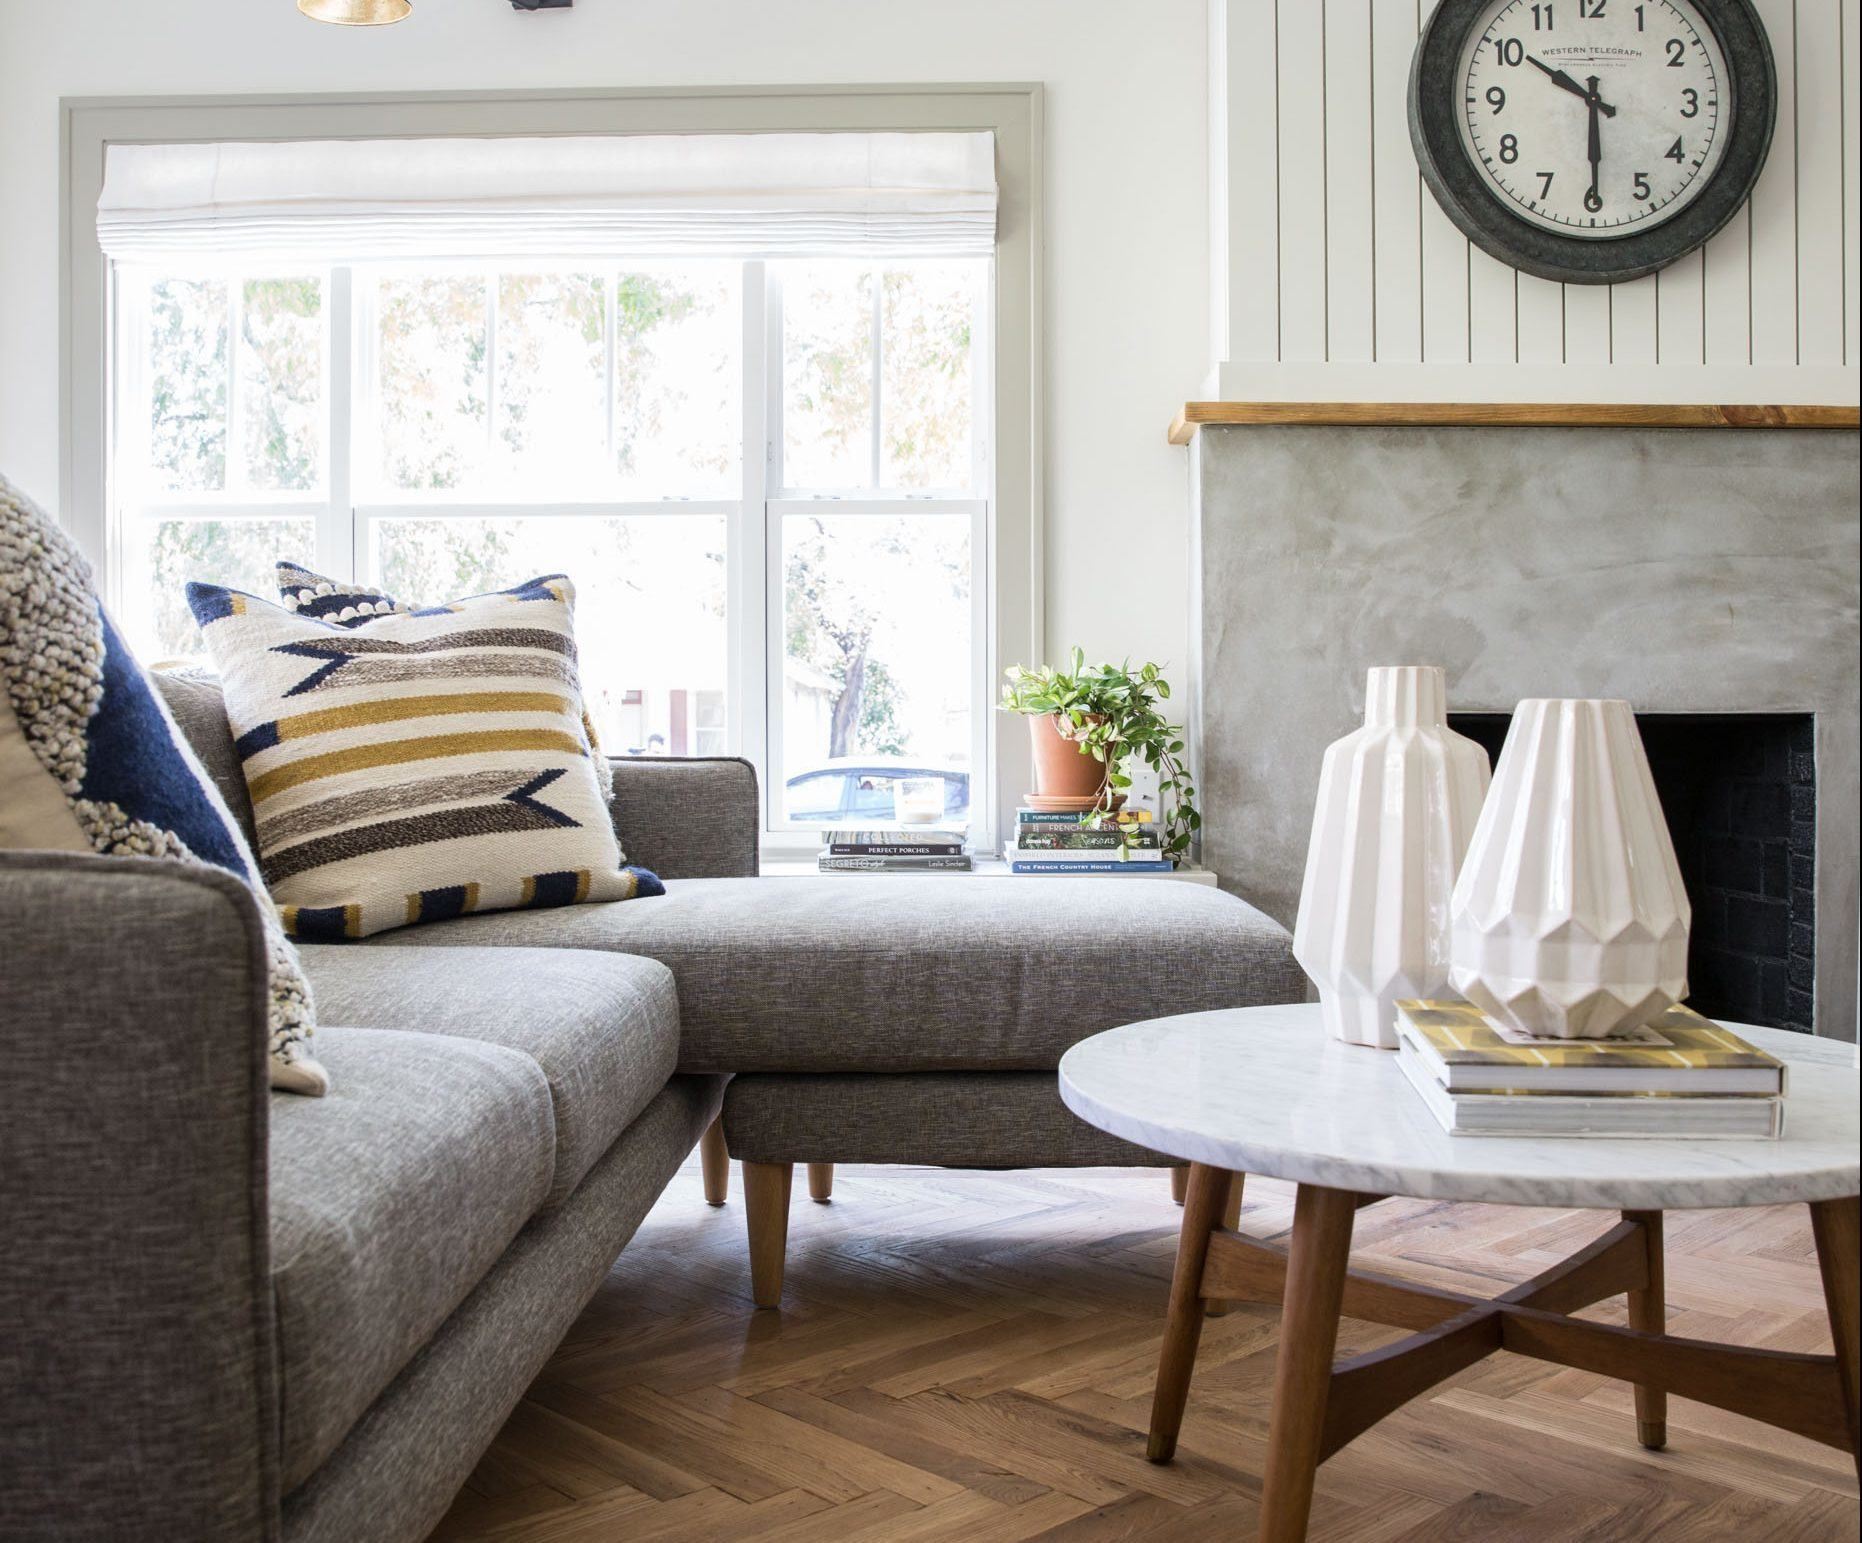 Get This Look: Fixer Upper Giraffe House Living Room